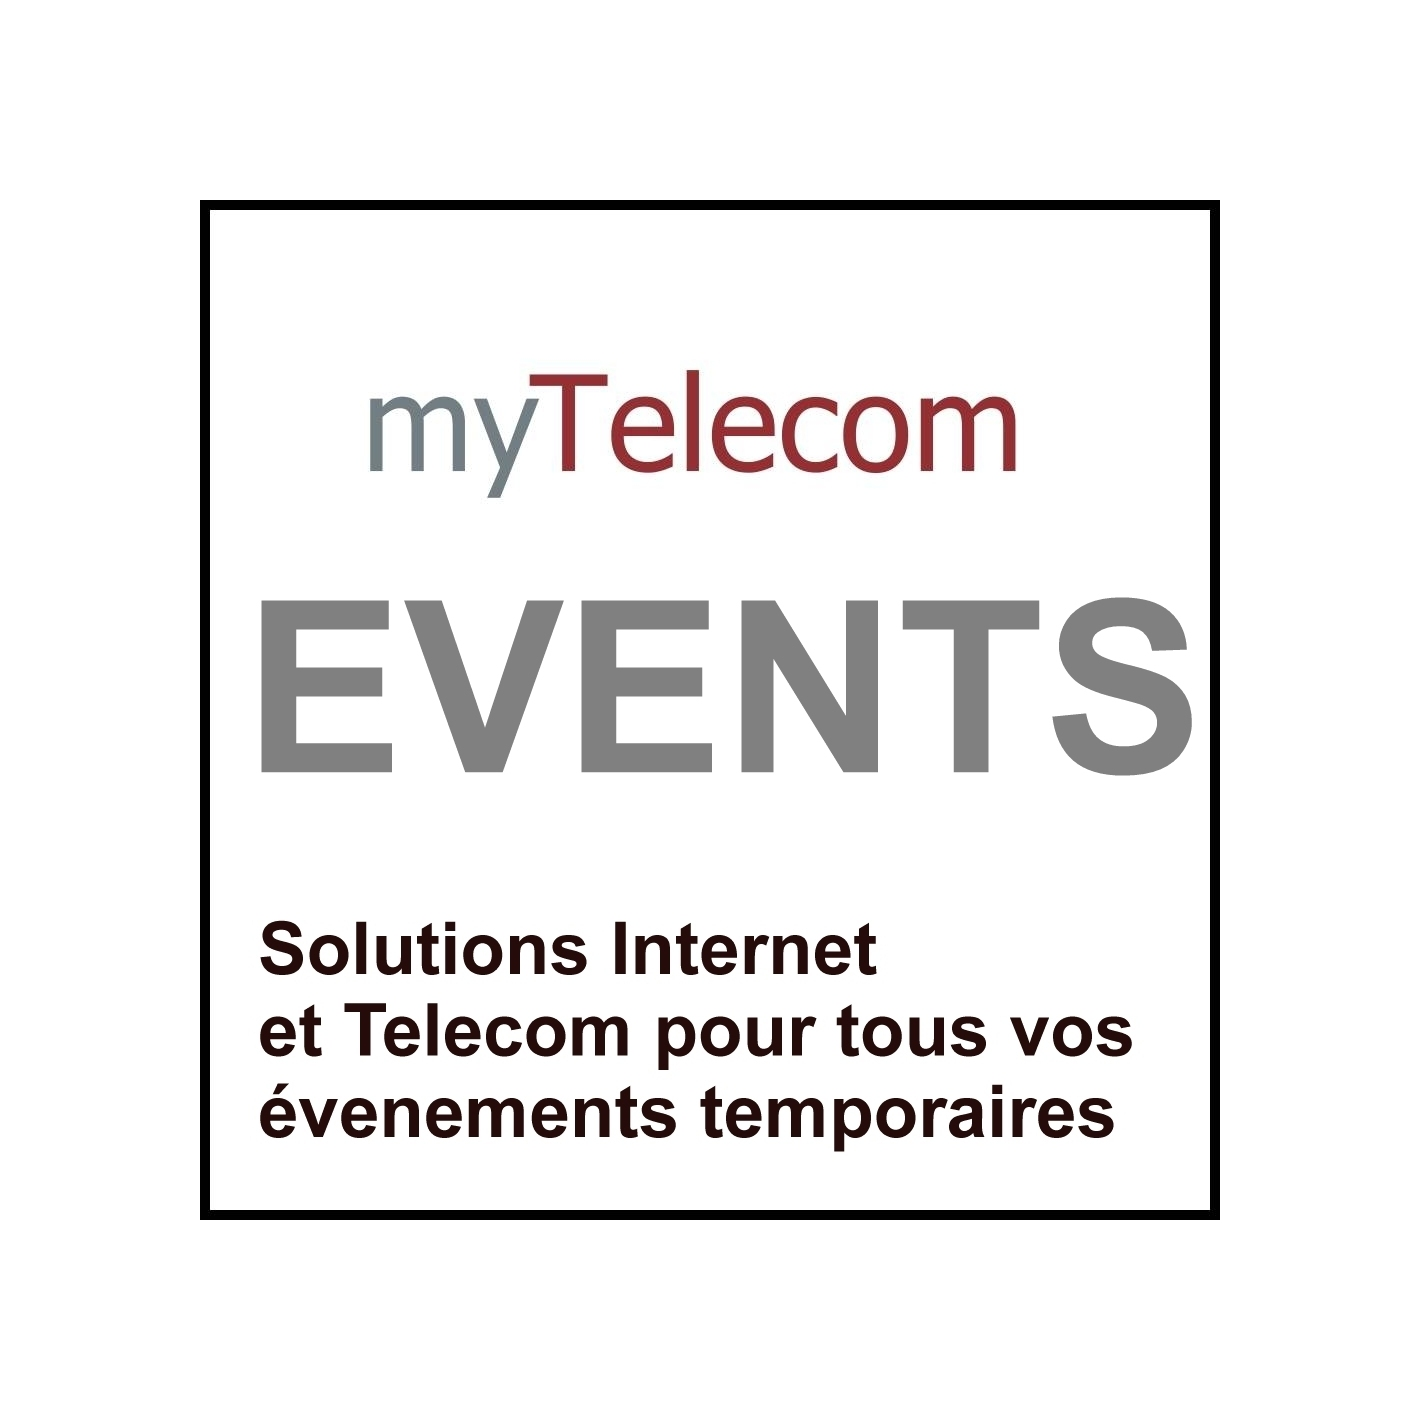 Les offres wifi hotel myTelecom Events